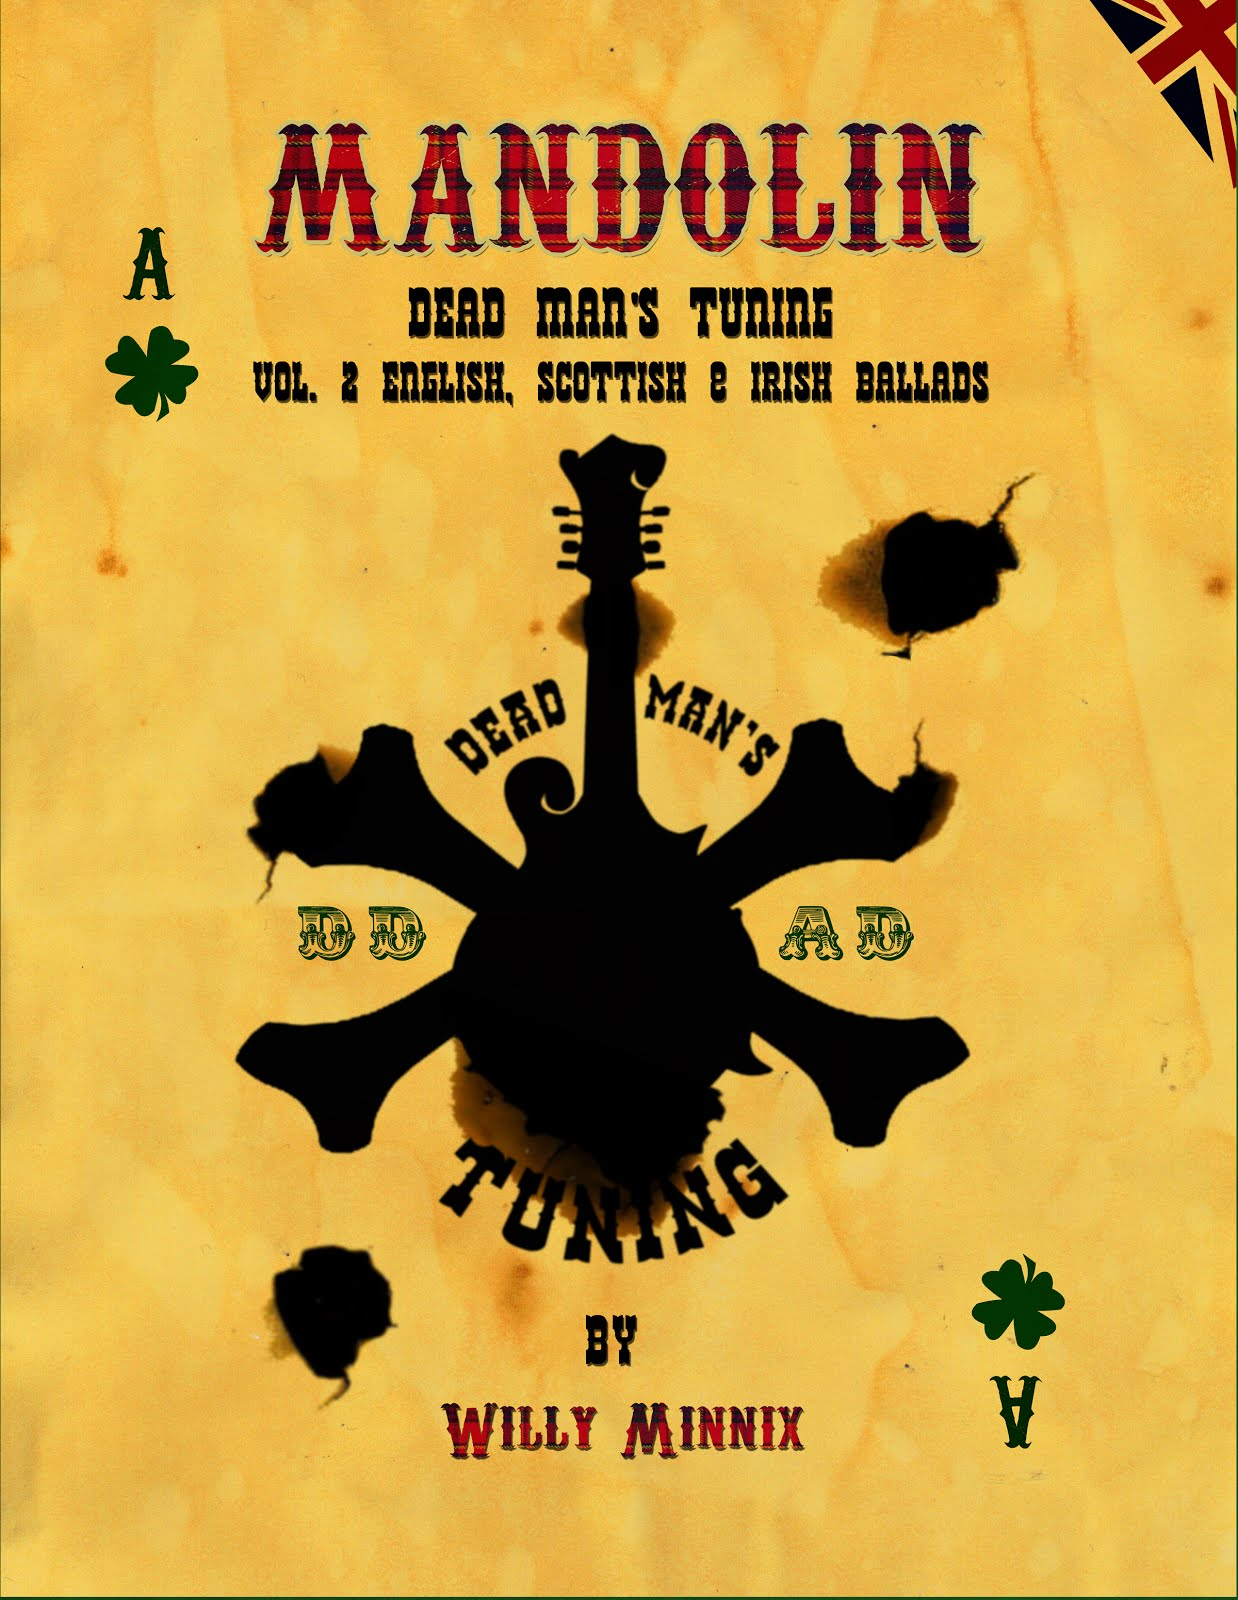 Mandolin Vol. 2